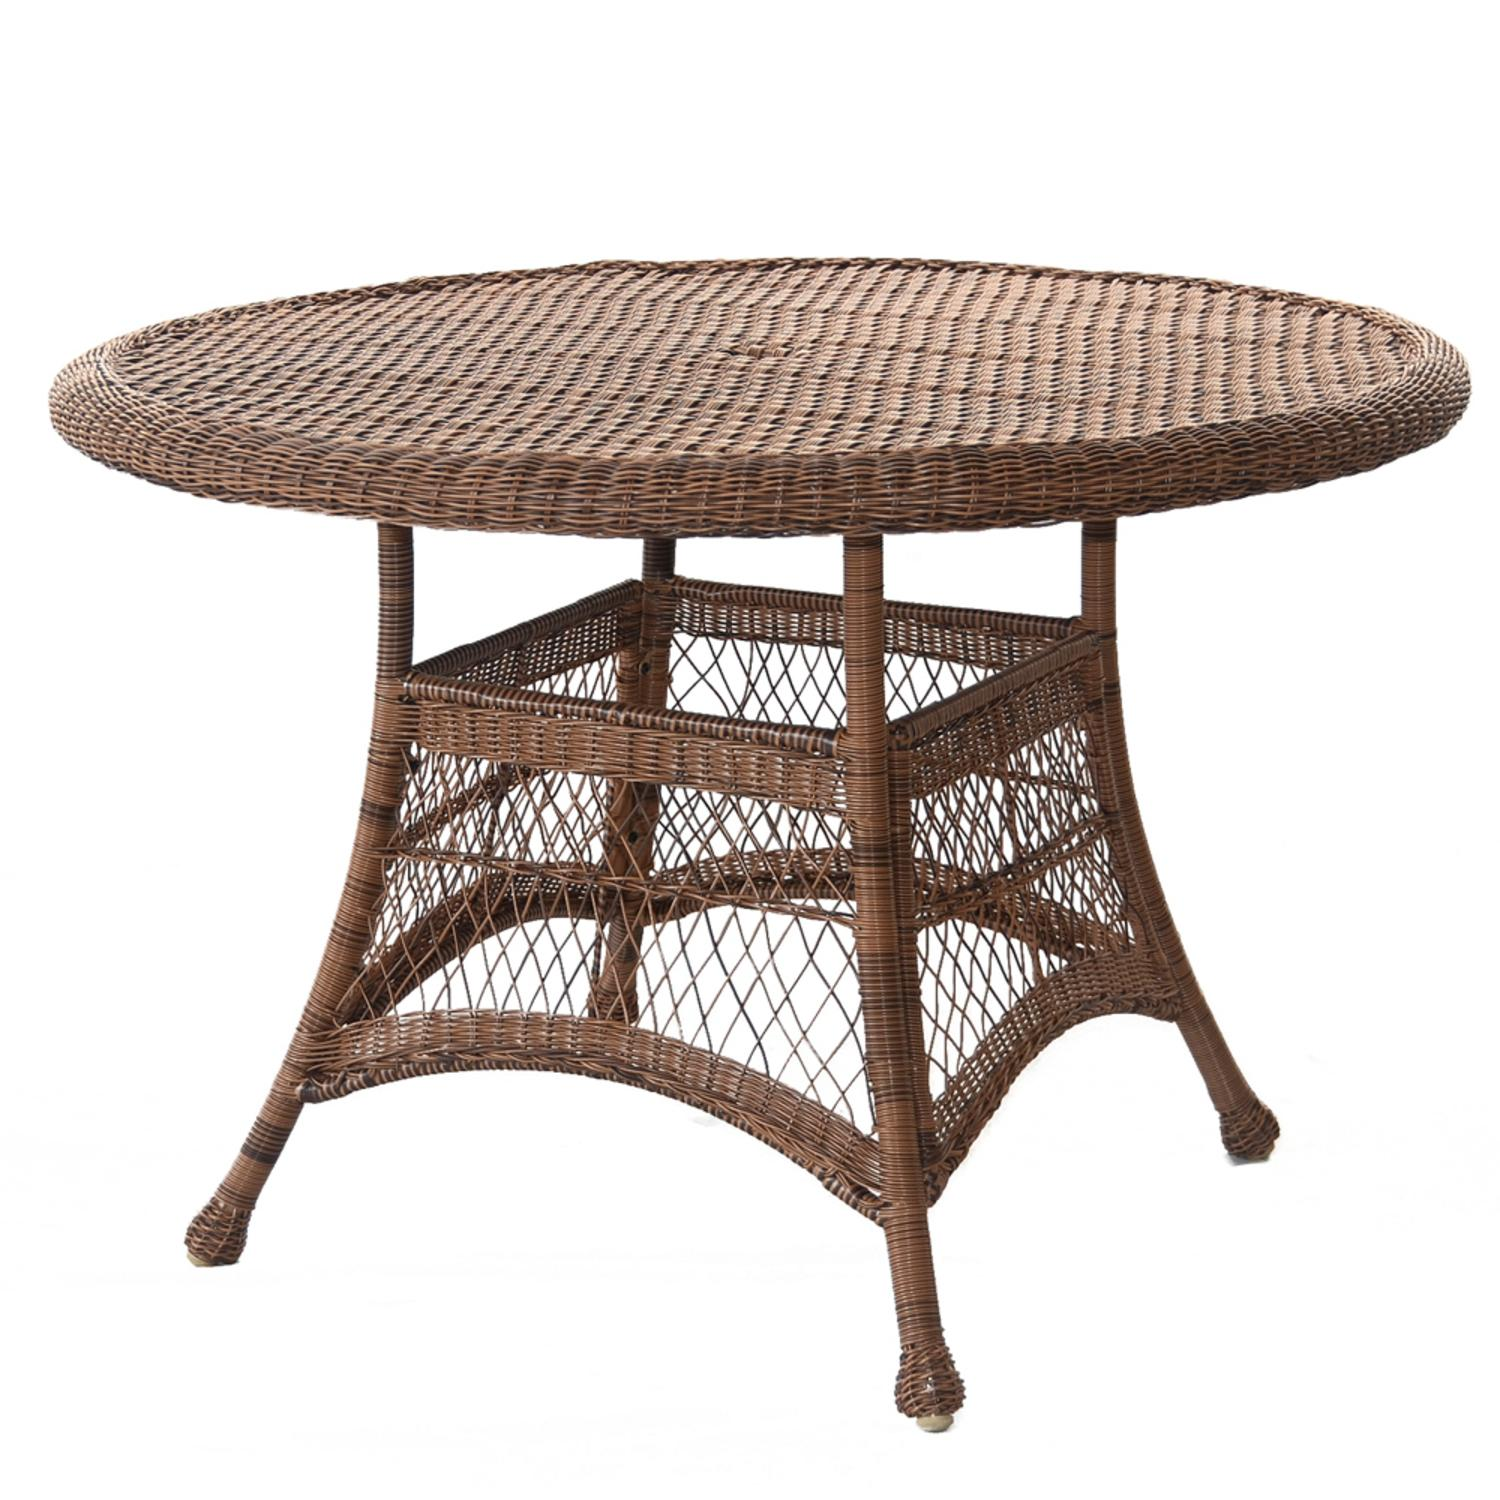 """44.5"""" Honey Resin Wicker Weather Resistant All-Season Outdoor Patio Dining Table"""